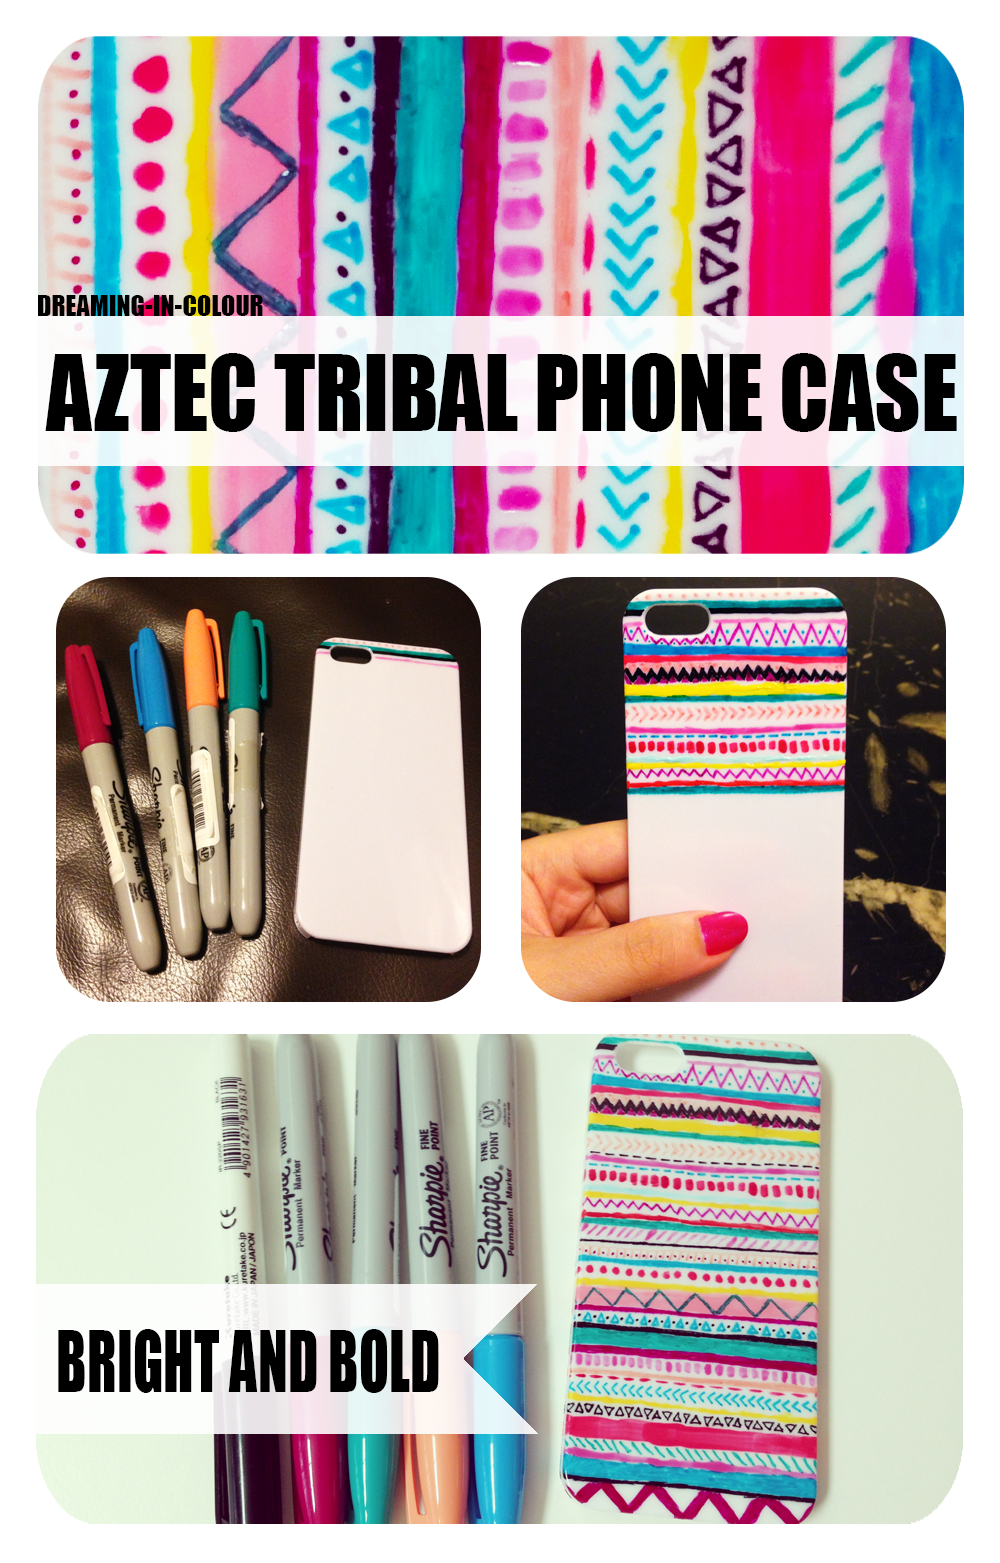 diy aztec tribal phone case with sharpie markers and nail polish ...